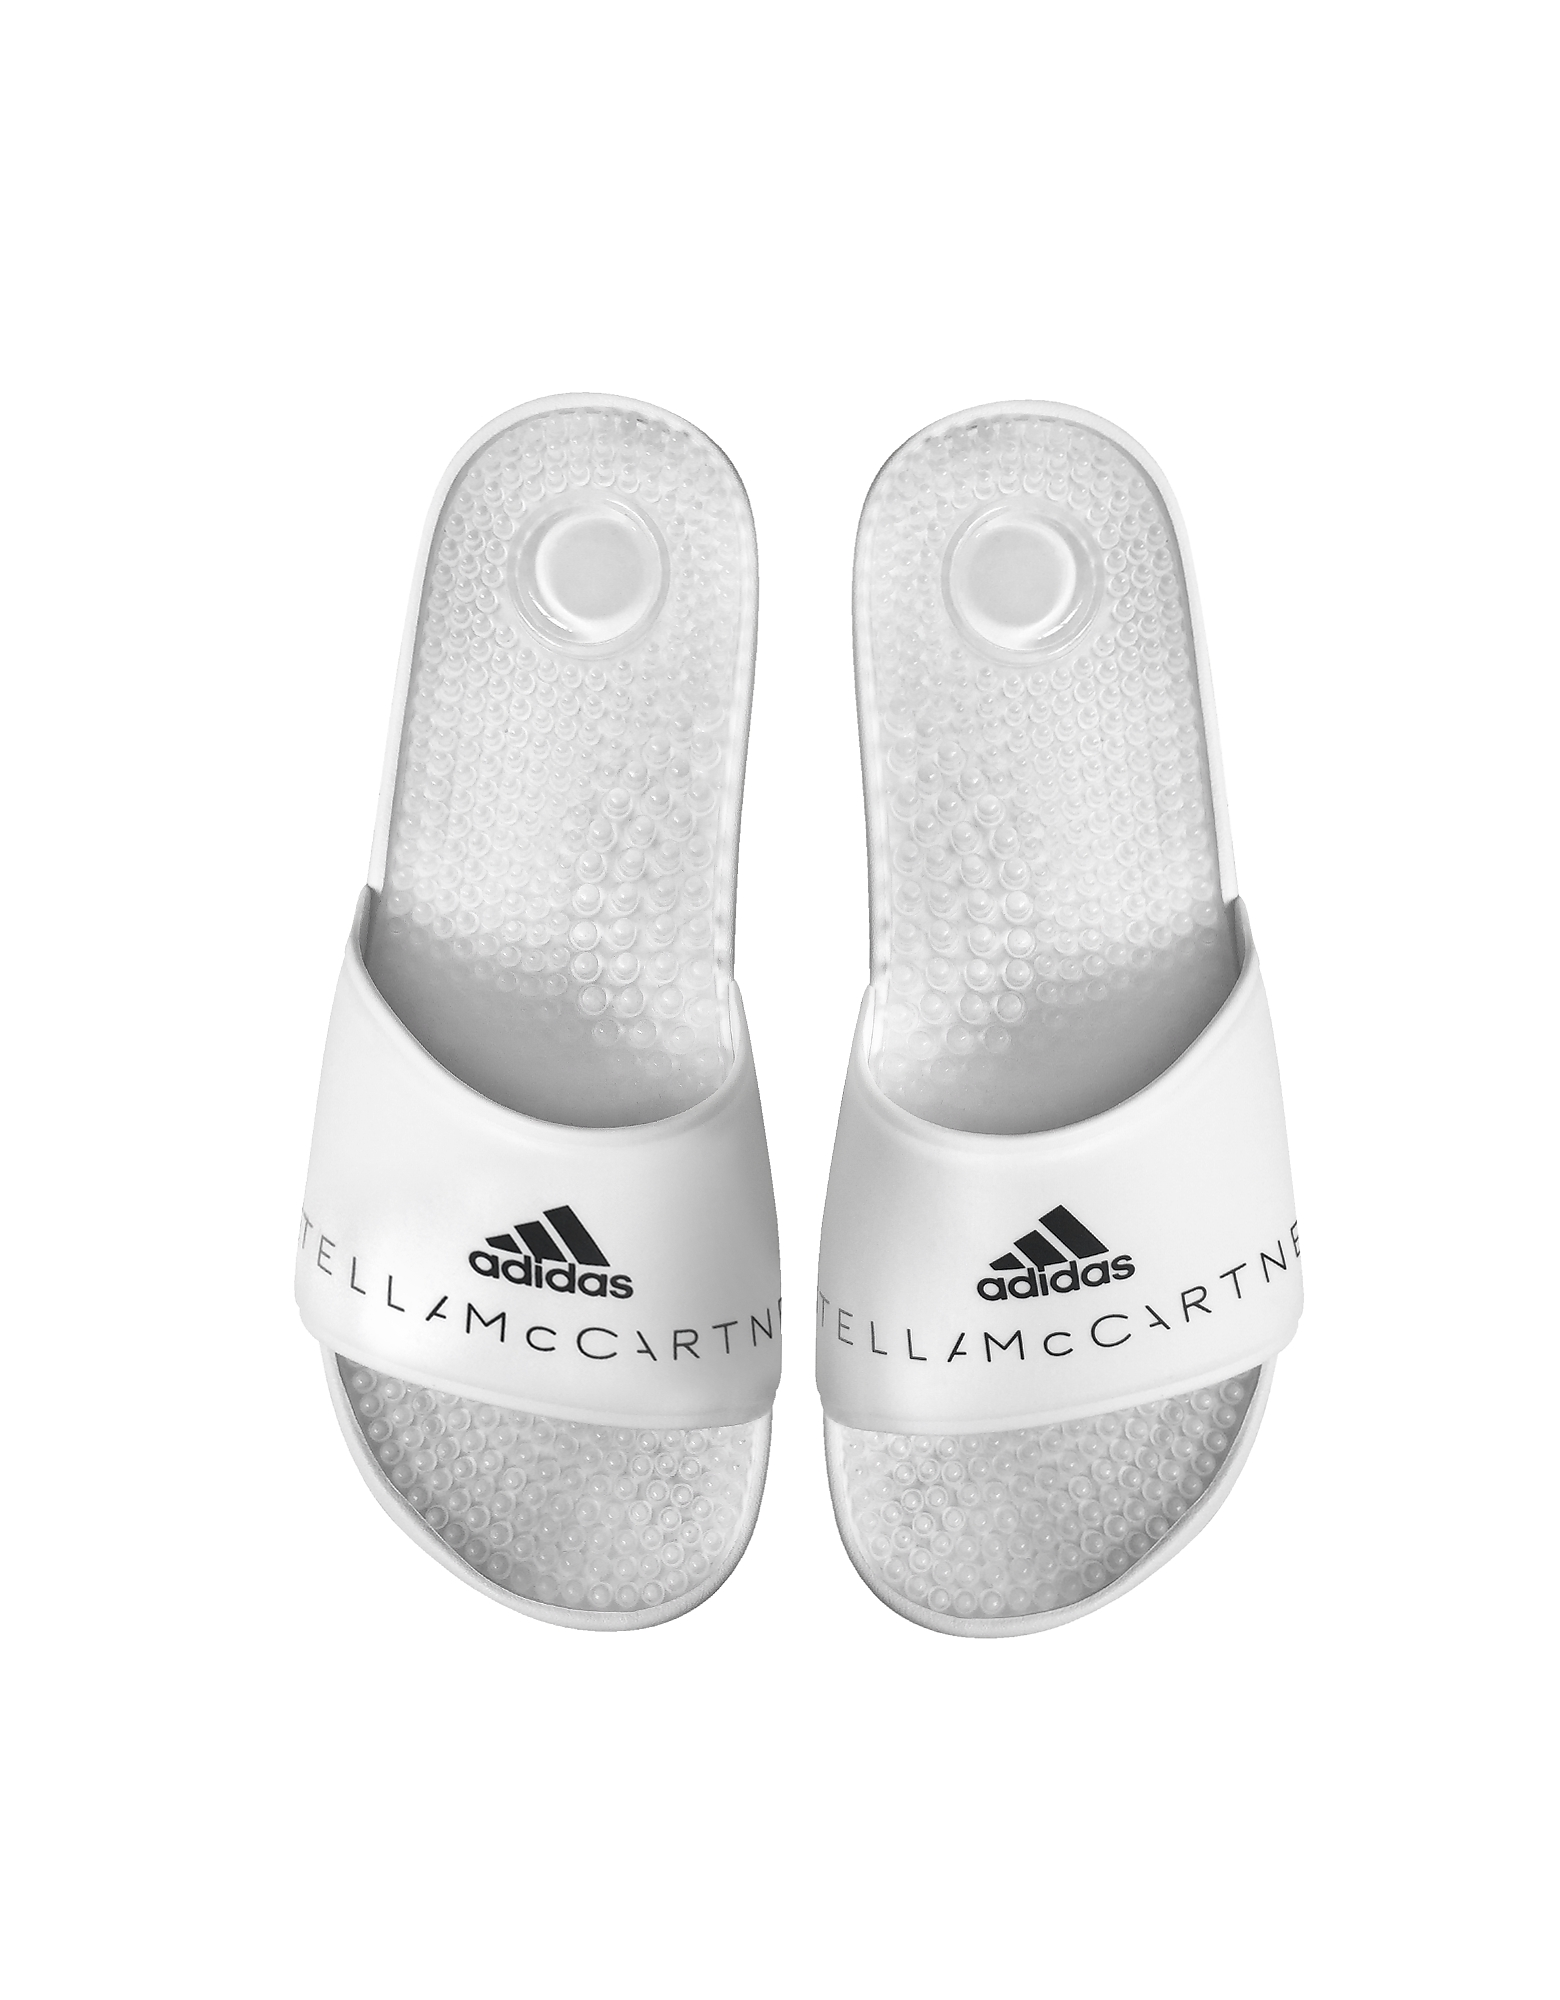 Adidas Stella McCartney Shoes, Adissage White Slide Pool Sandals